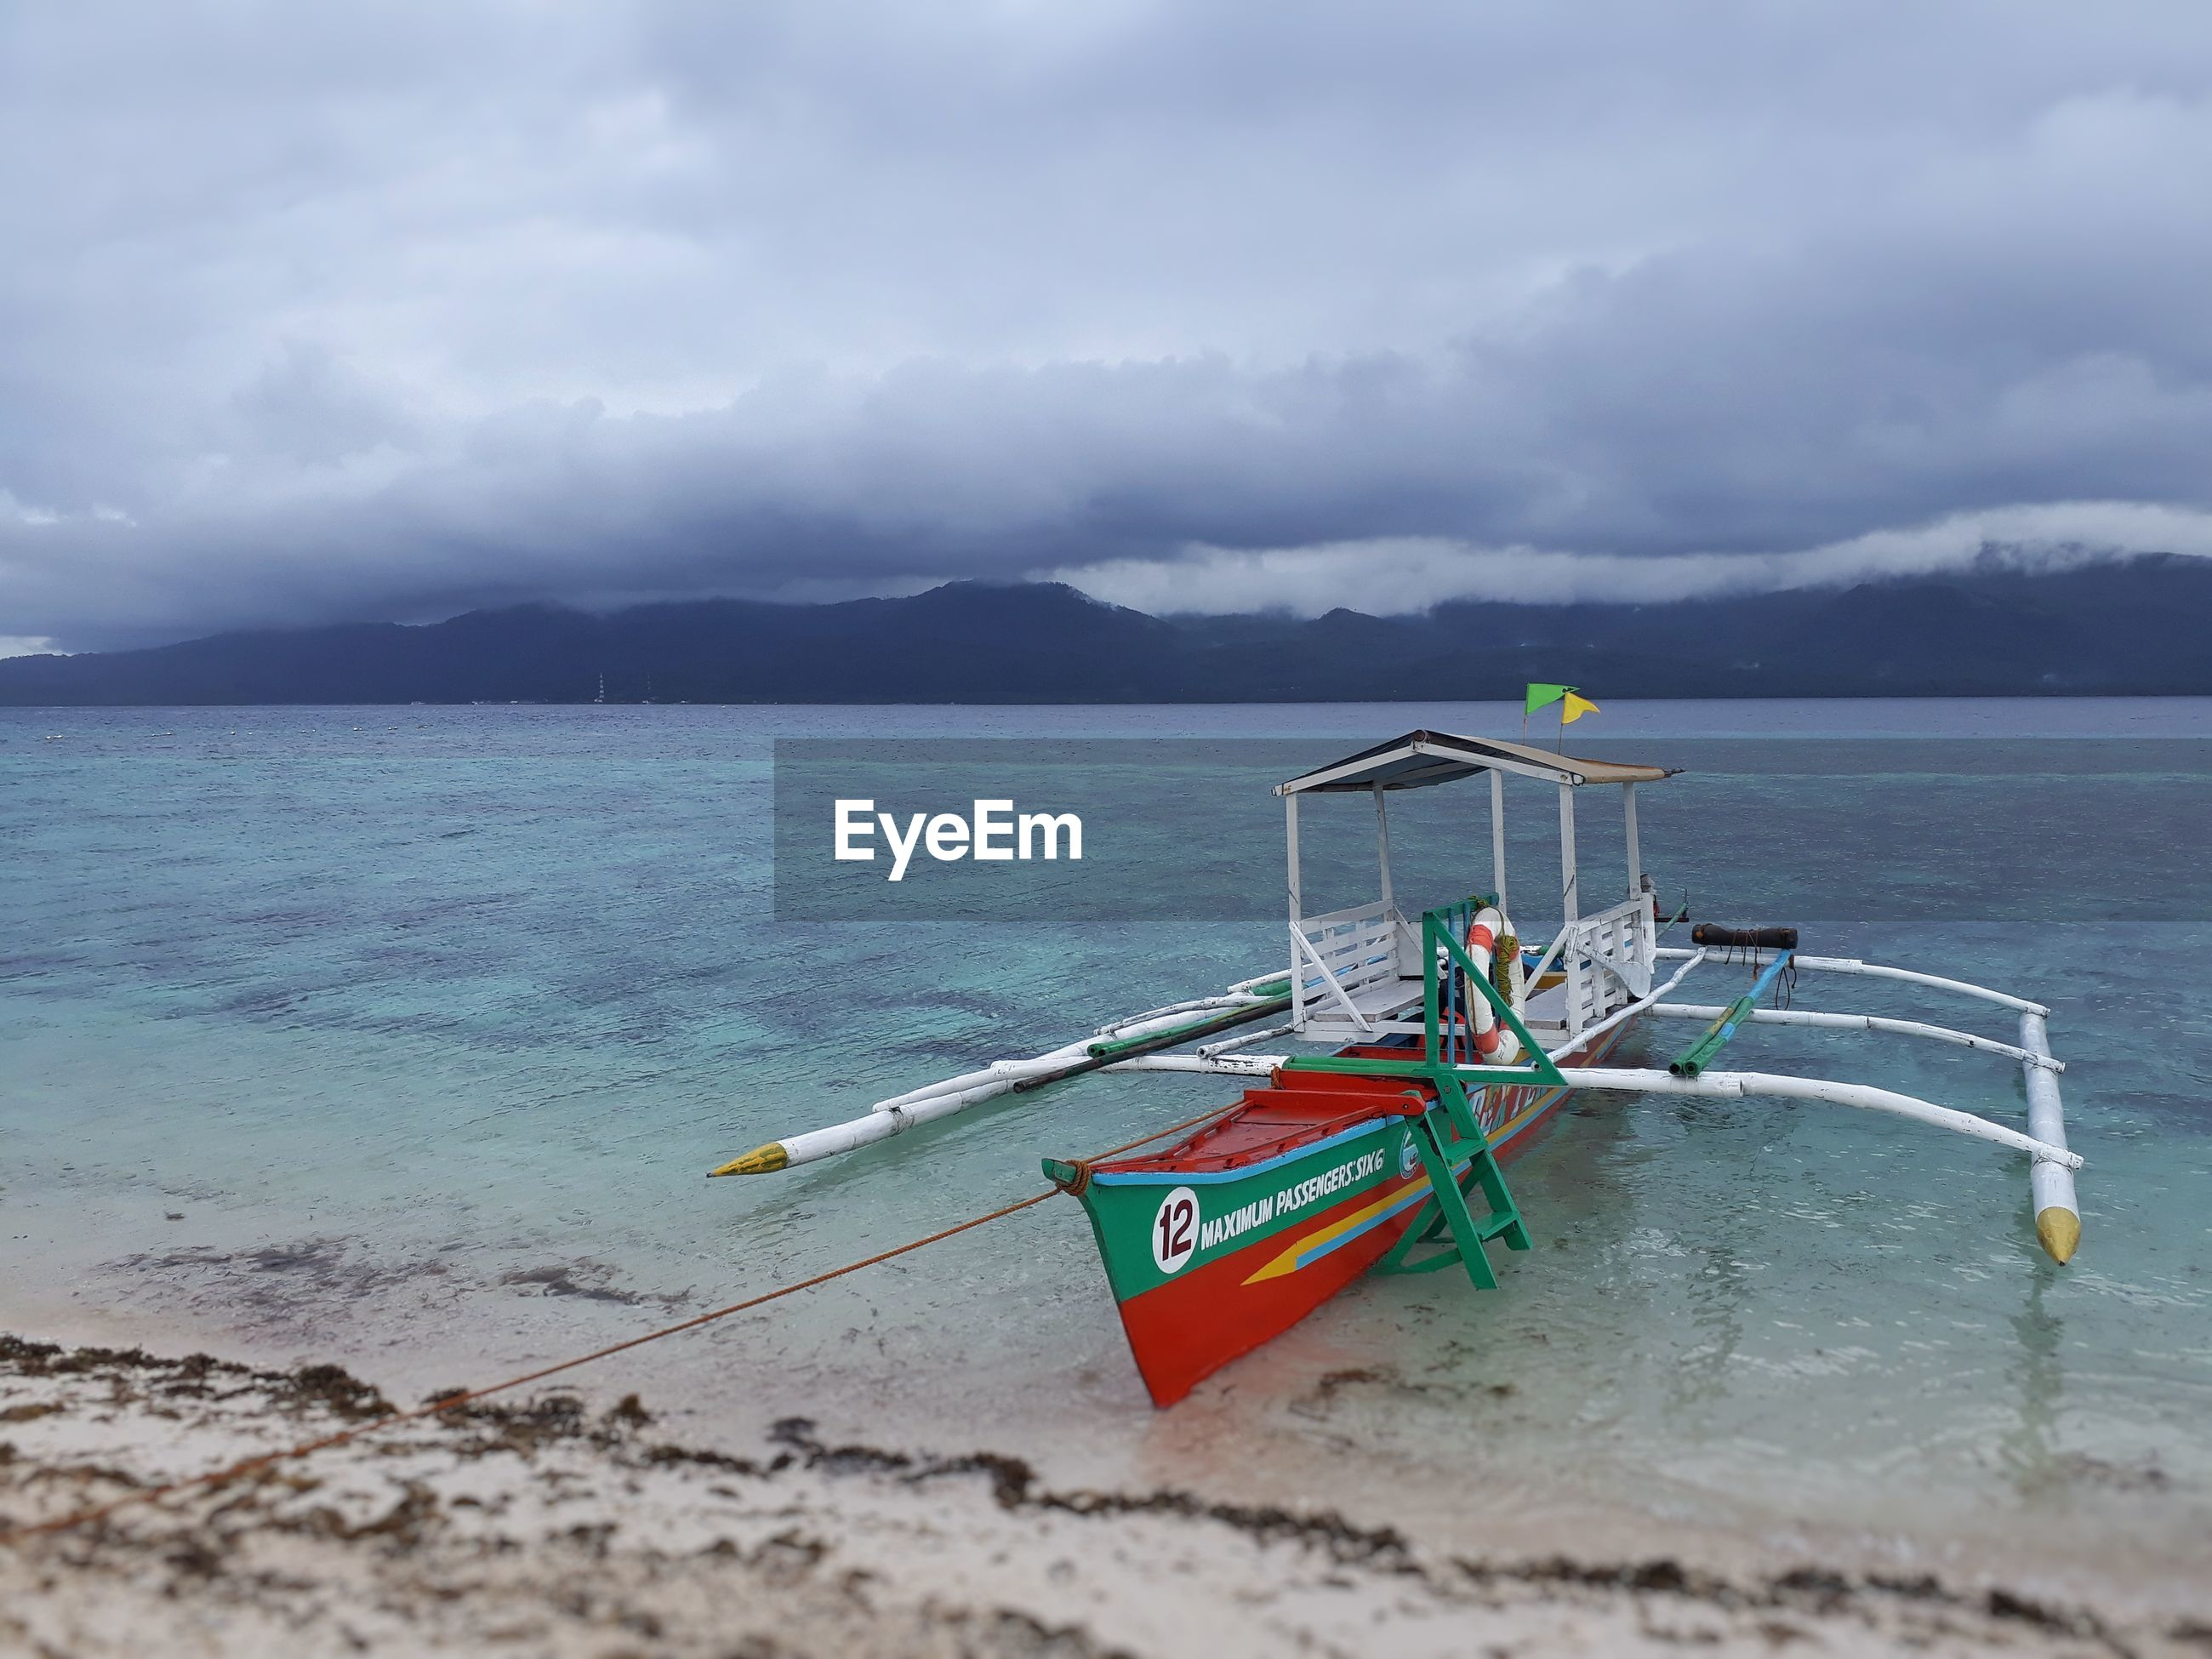 water, sea, sky, nature, cloud - sky, beauty in nature, scenics, day, nautical vessel, transportation, outdoors, horizon over water, outrigger, real people, mountain